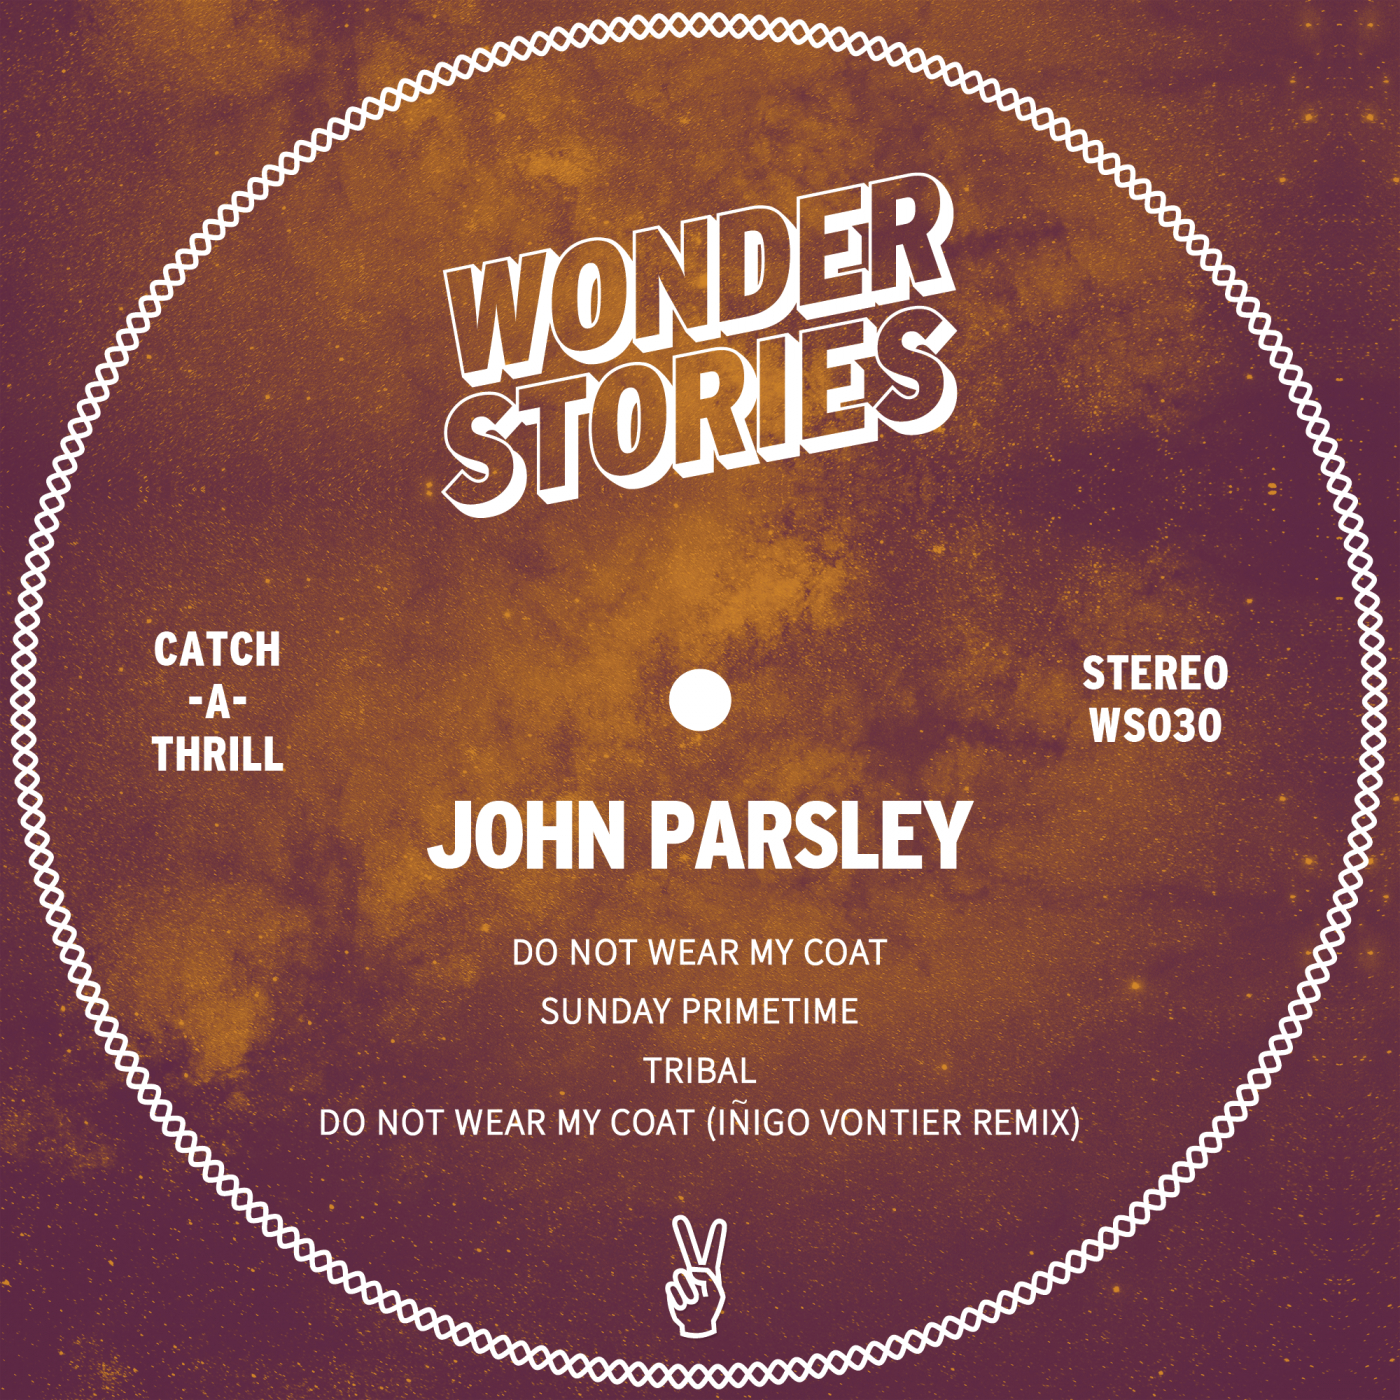 PREMIERE – John Parsley – Tribal (Wonder Stories)